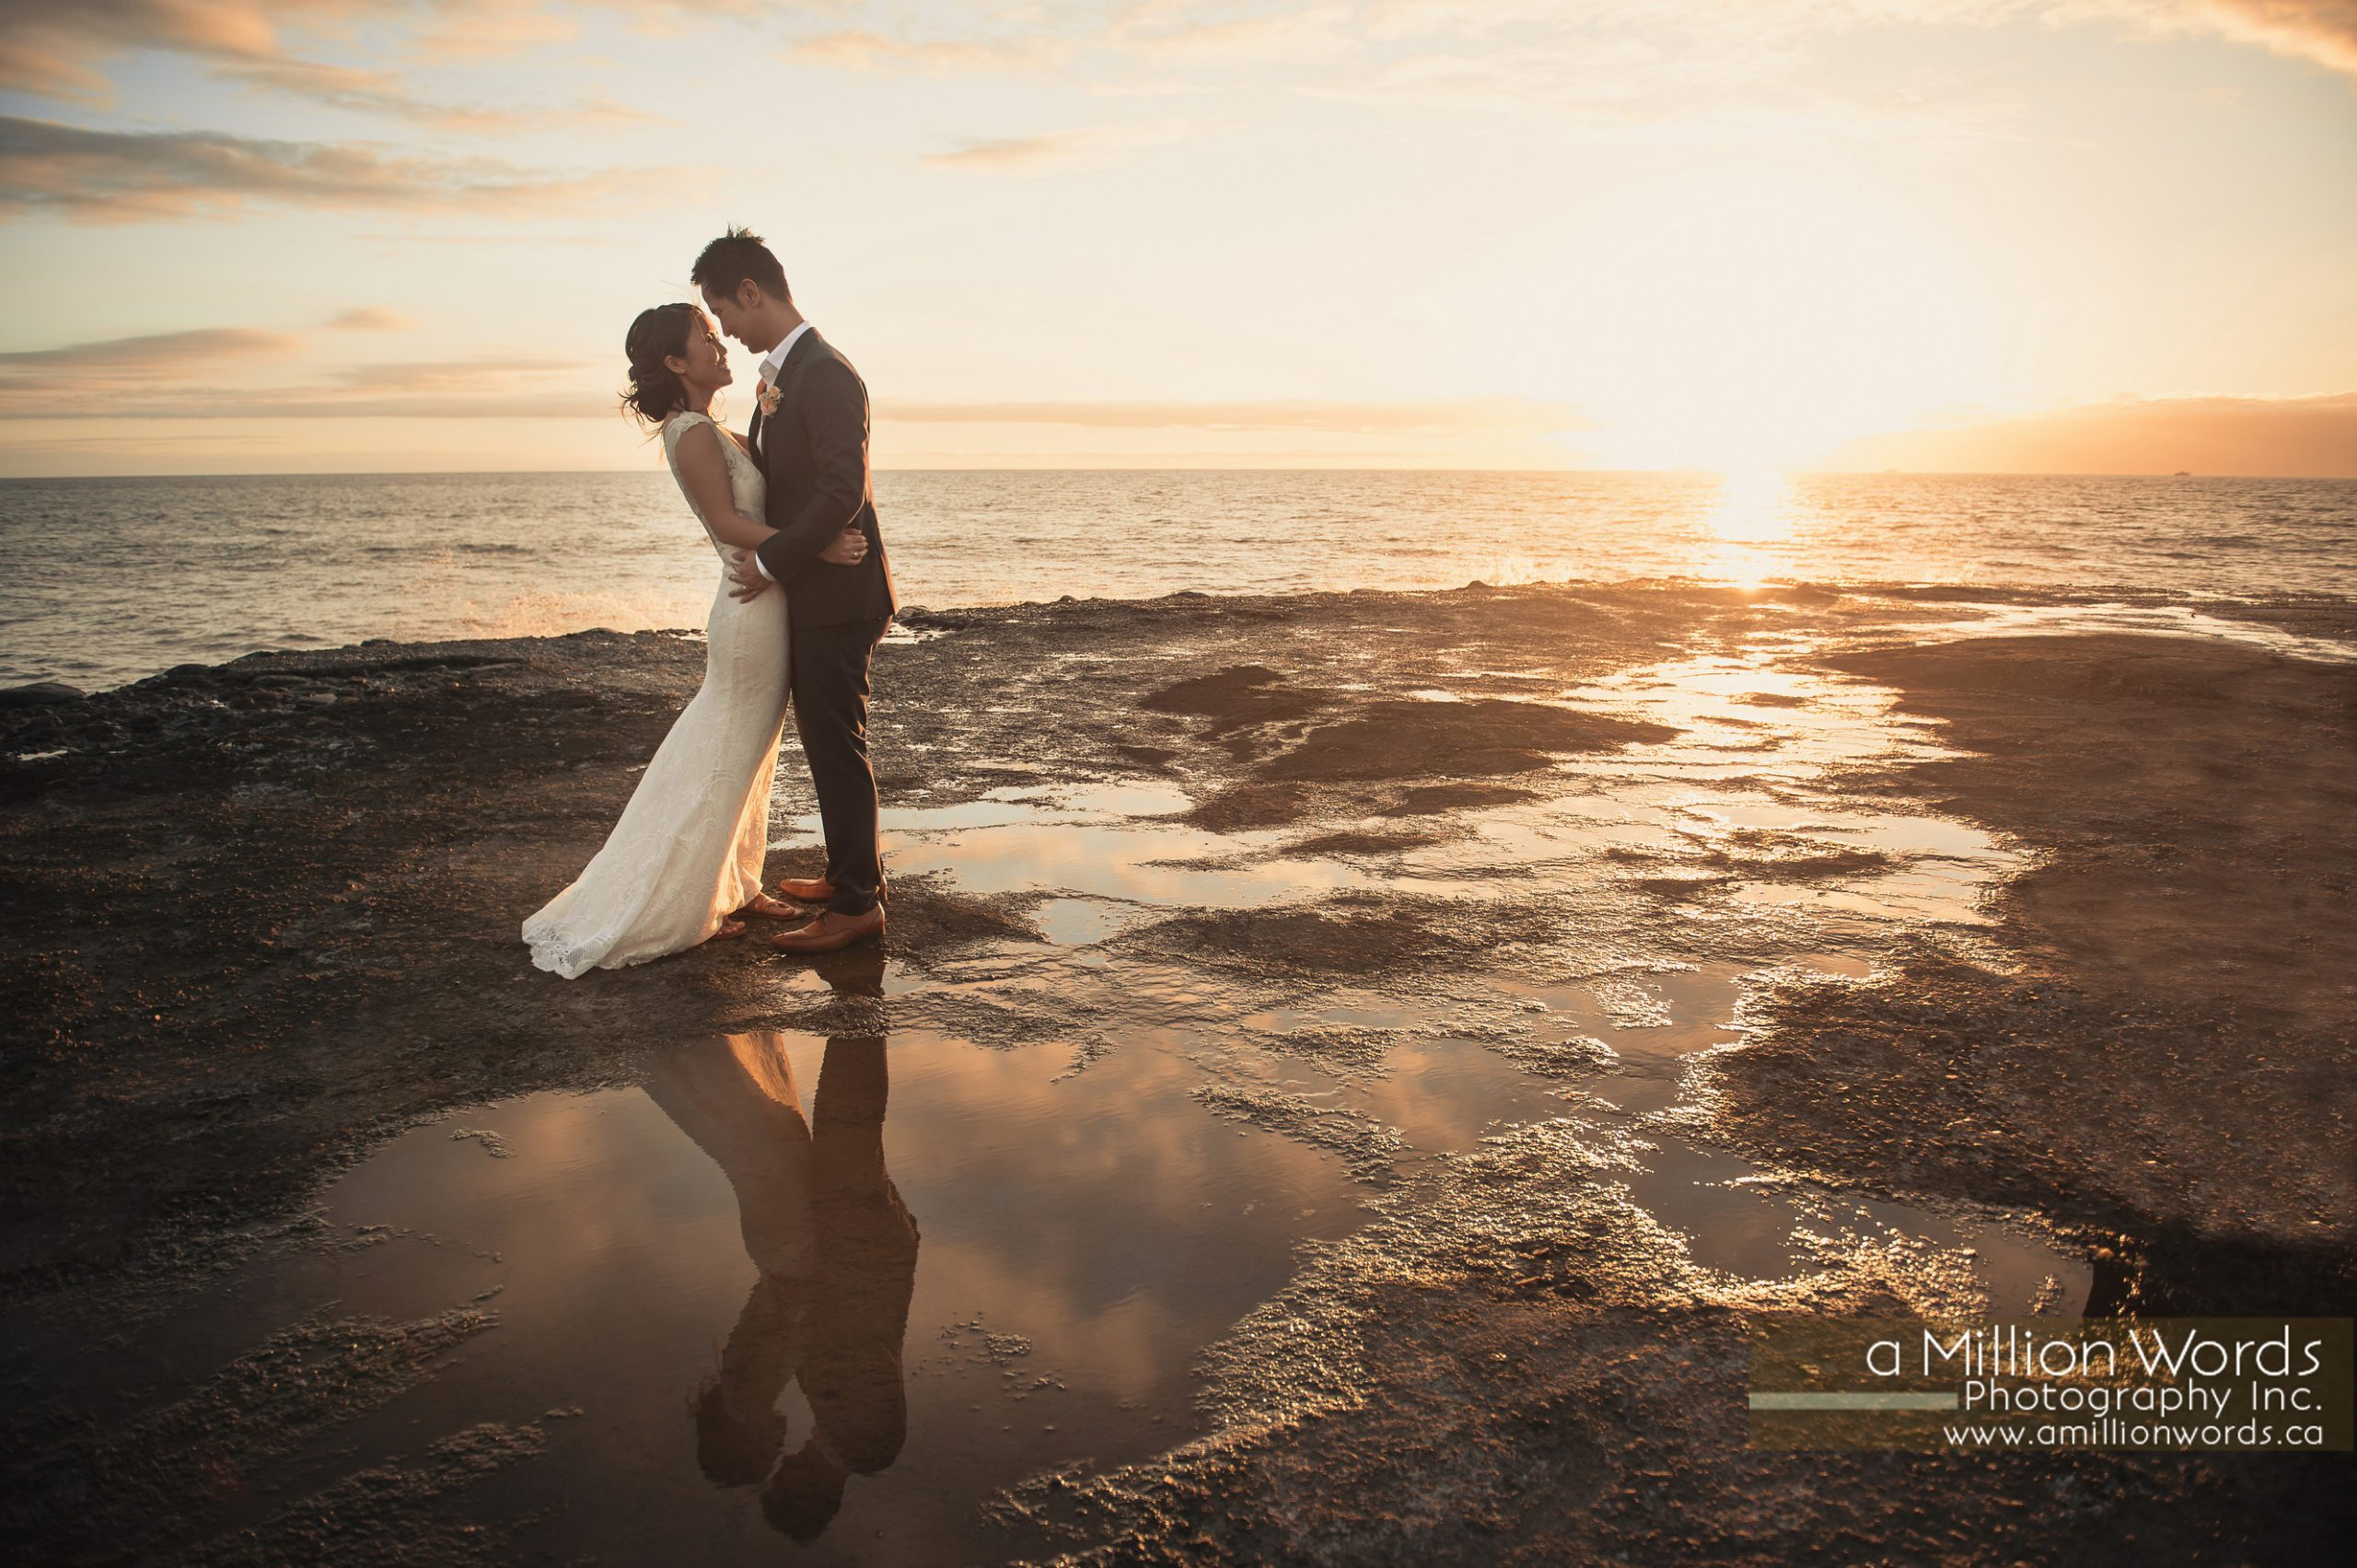 kw_destination_wedding_photography42